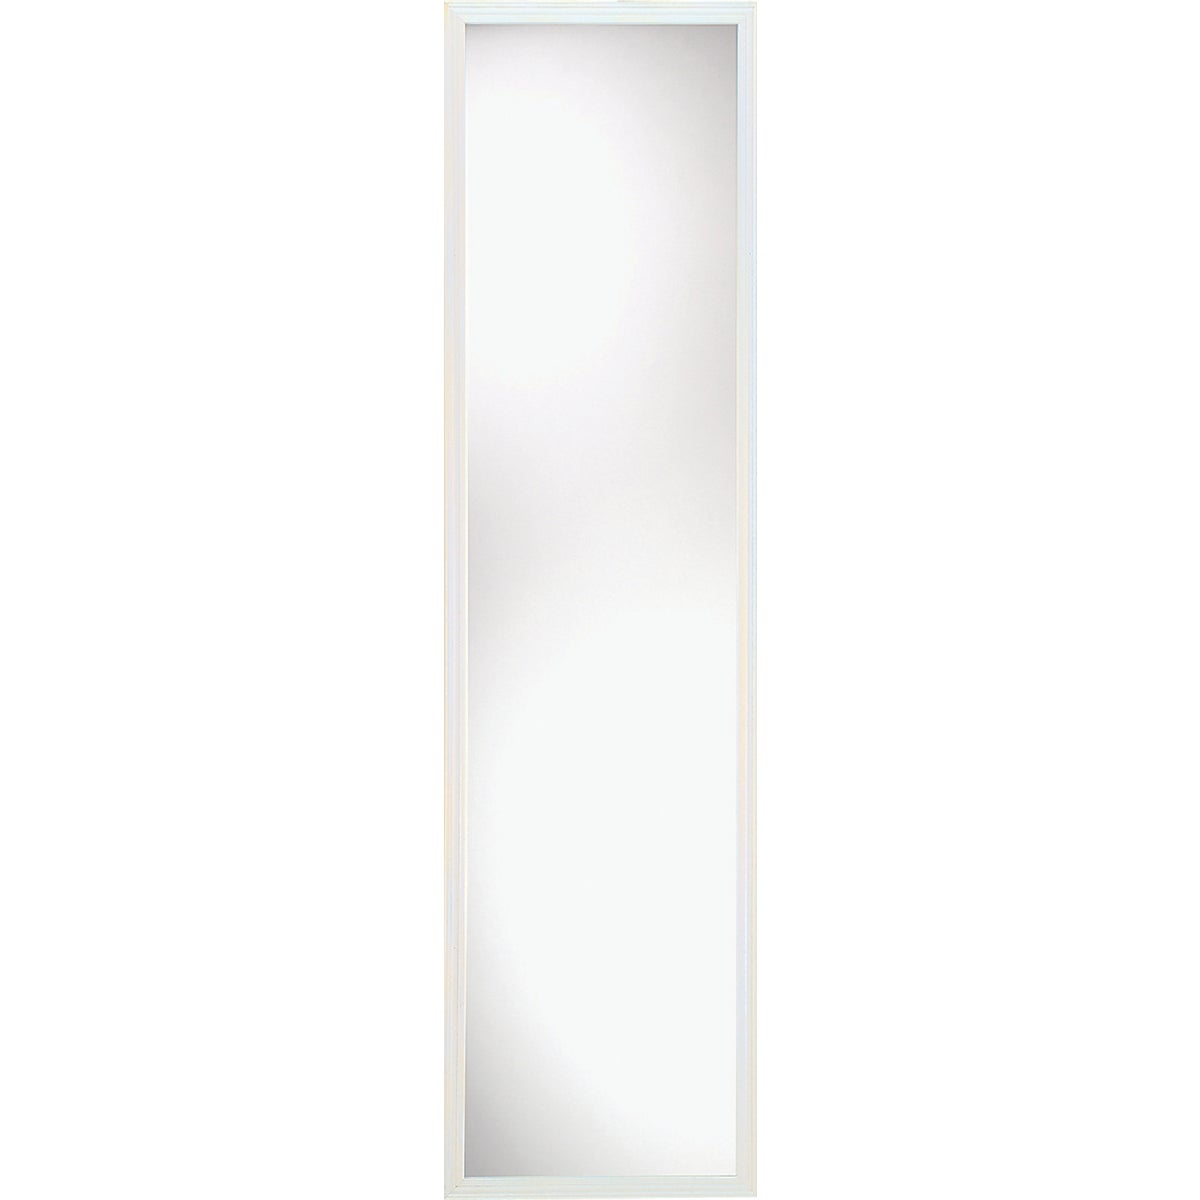 SUAVE WHT DOOR MIRROR